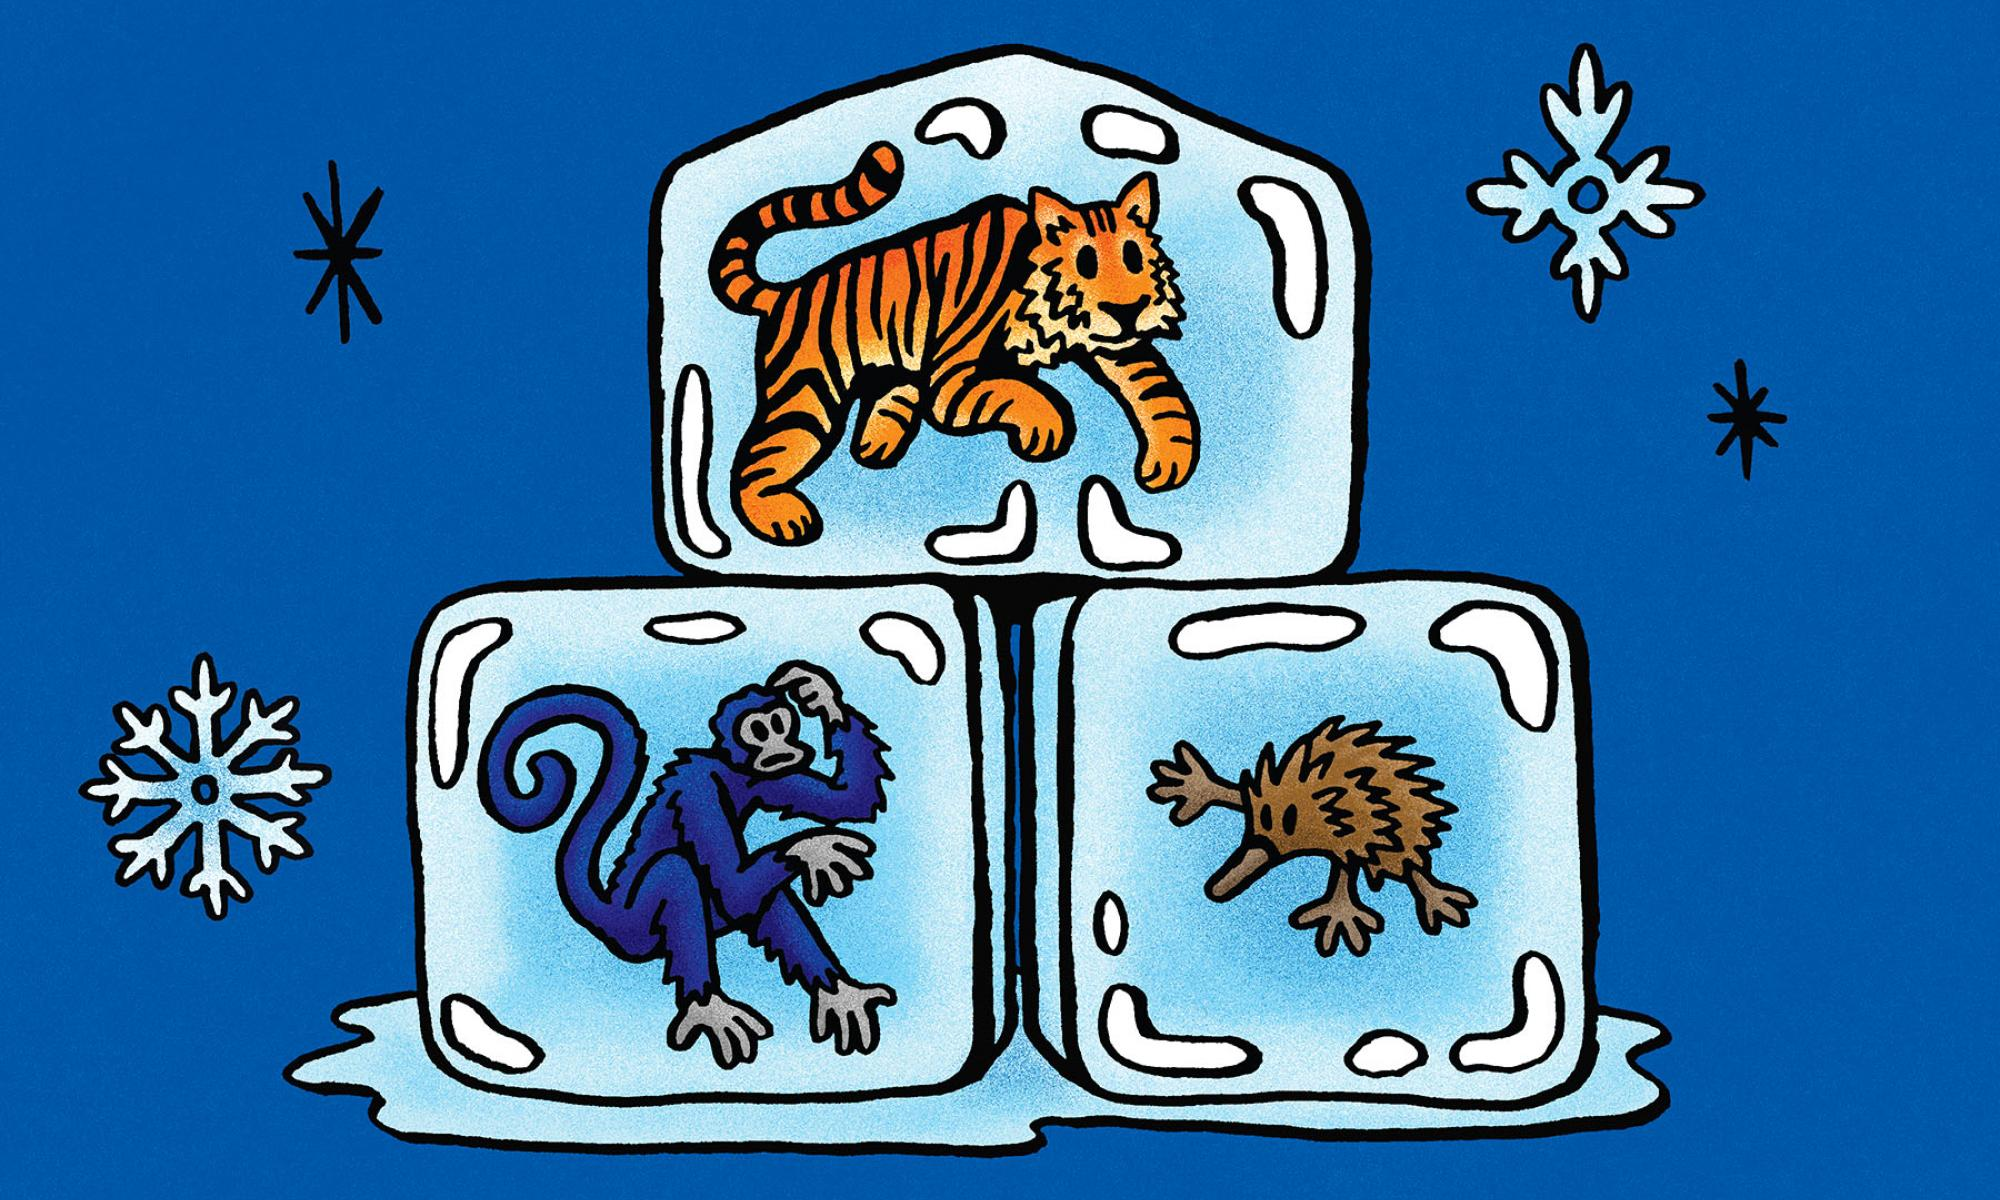 Illustration of the Siberian tiger, the Colombian spider monkey and the long-beaked echidna, each embedded in a cube of ice against a blue background decorated with snowflakes